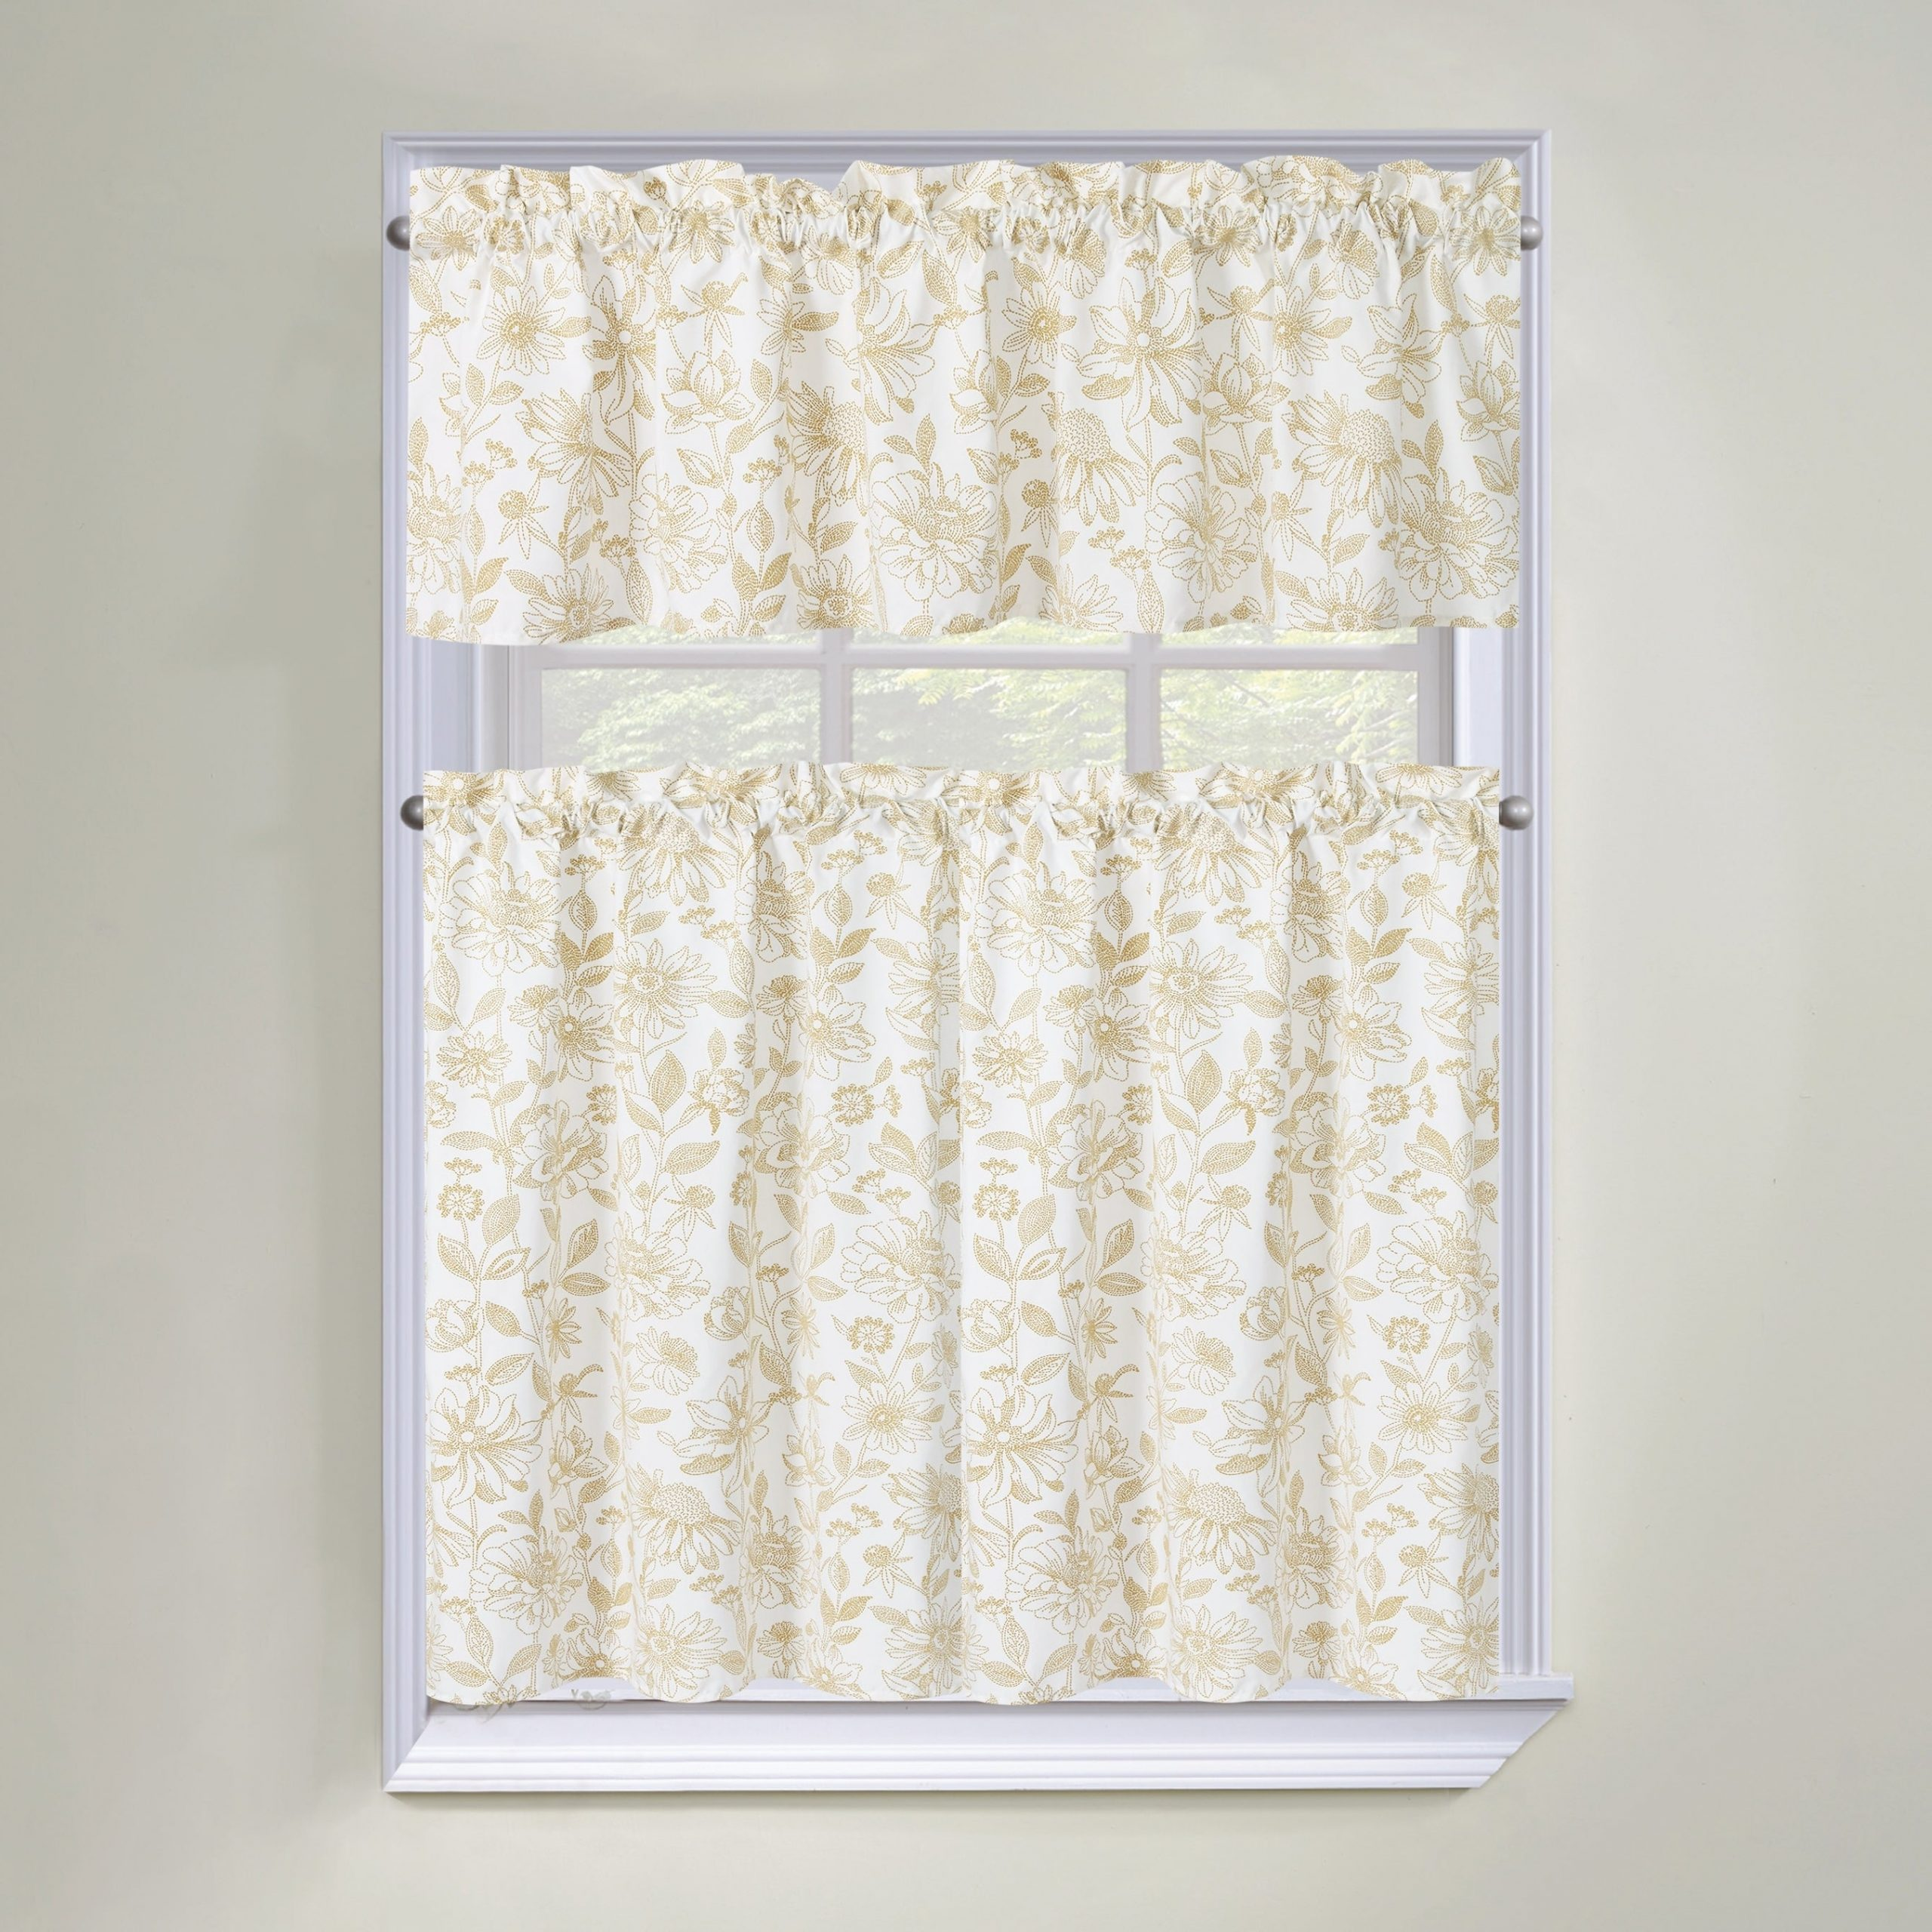 Well Liked Regal Home Collections Amelia Floral 3 Piece Tier Curtain And Valance Set – 60 W X36 L Inches For Seabreeze 36 Inch Tier Pairs In Ocean (View 17 of 20)